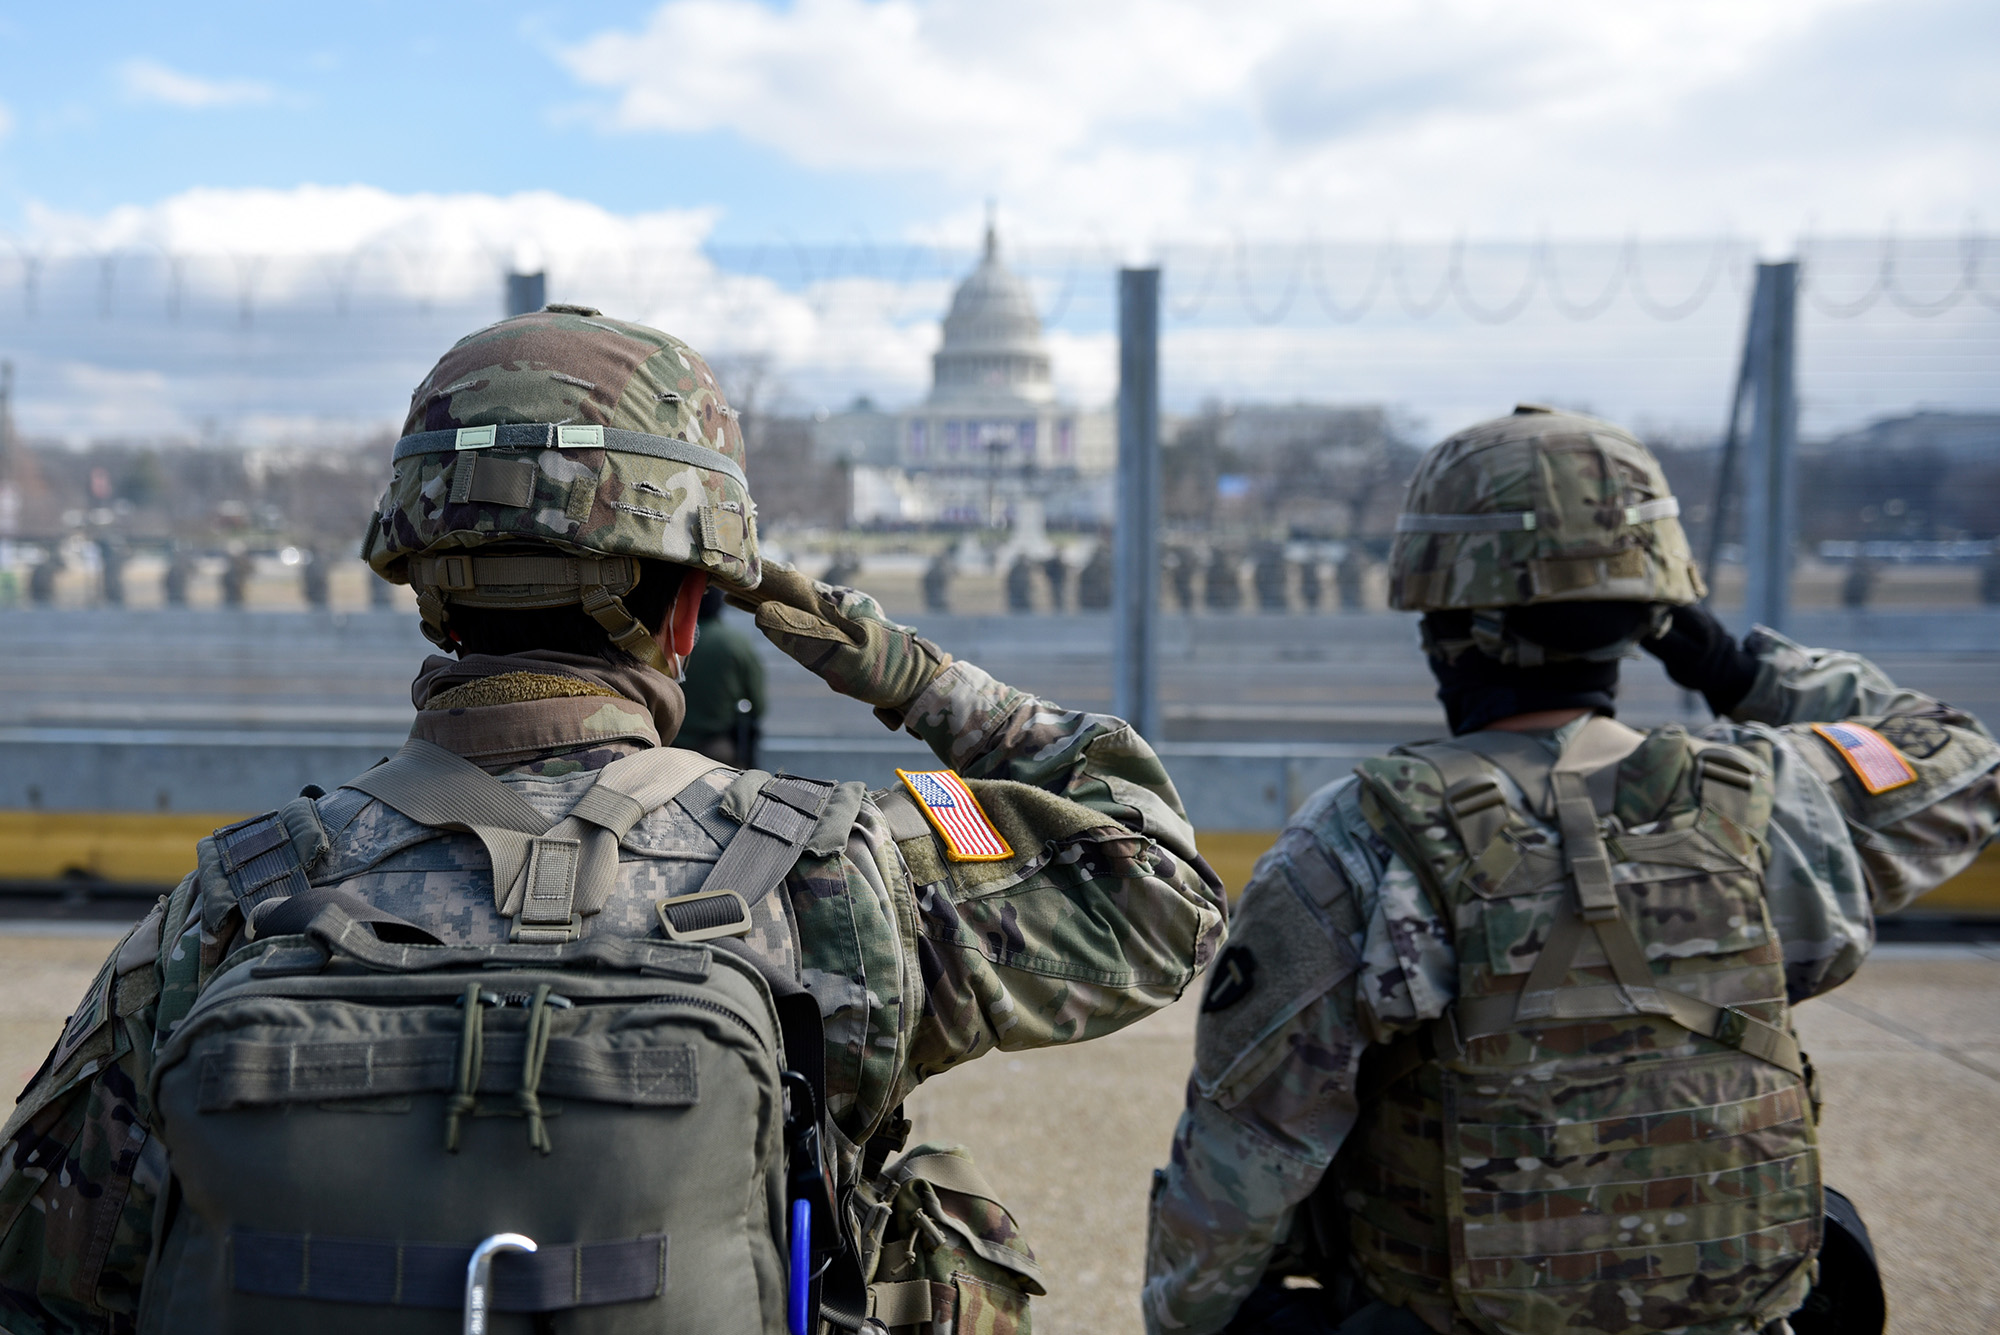 Members of the National Guard salute as they stand near the U.S. Capitol while the national anthem is sung during the inauguration of President-elect Joe Biden and Vice President-elect Kamala Harris on Jan. 20, 2021, in Washington. (Stephanie Keith/Getty Images)